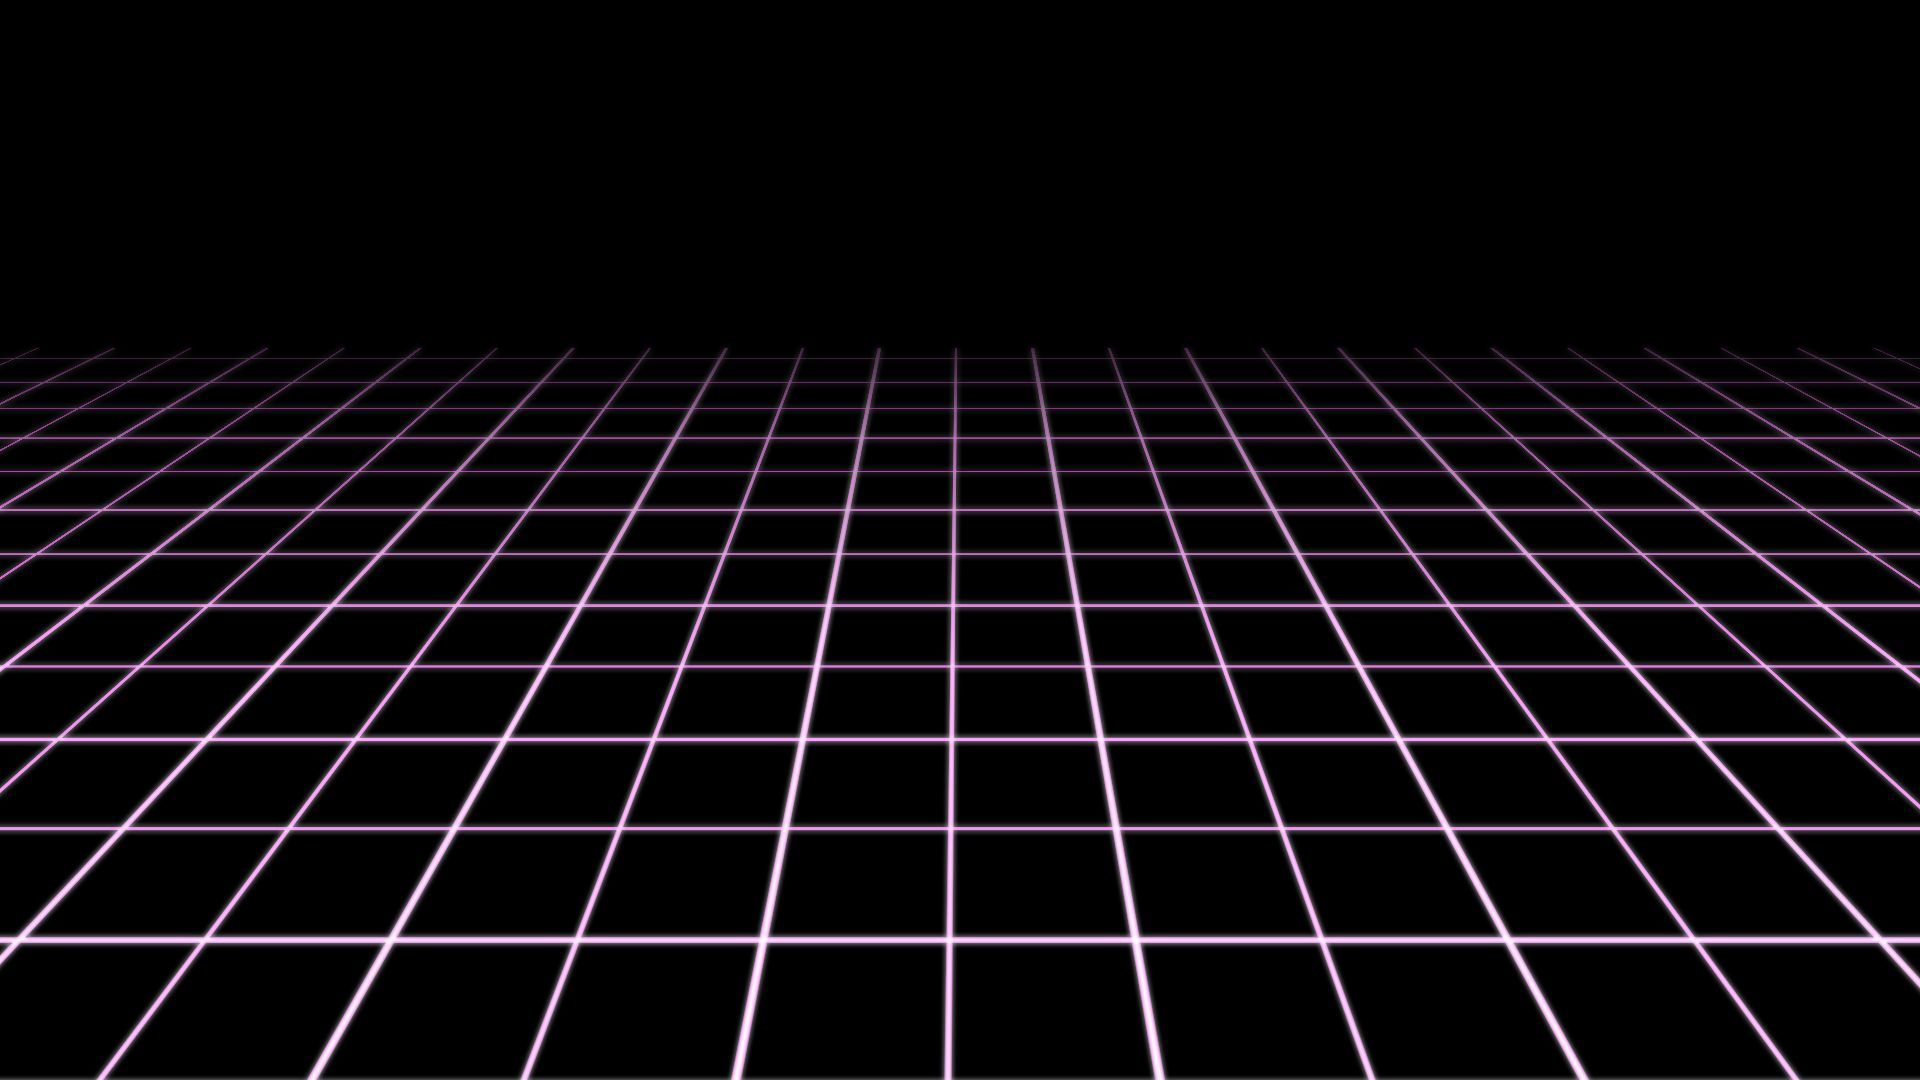 Grid Pink Aesthetic Tumblr Backgrounds Cool Desktop Wallpapers Aesthetic Desktop Wallpaper